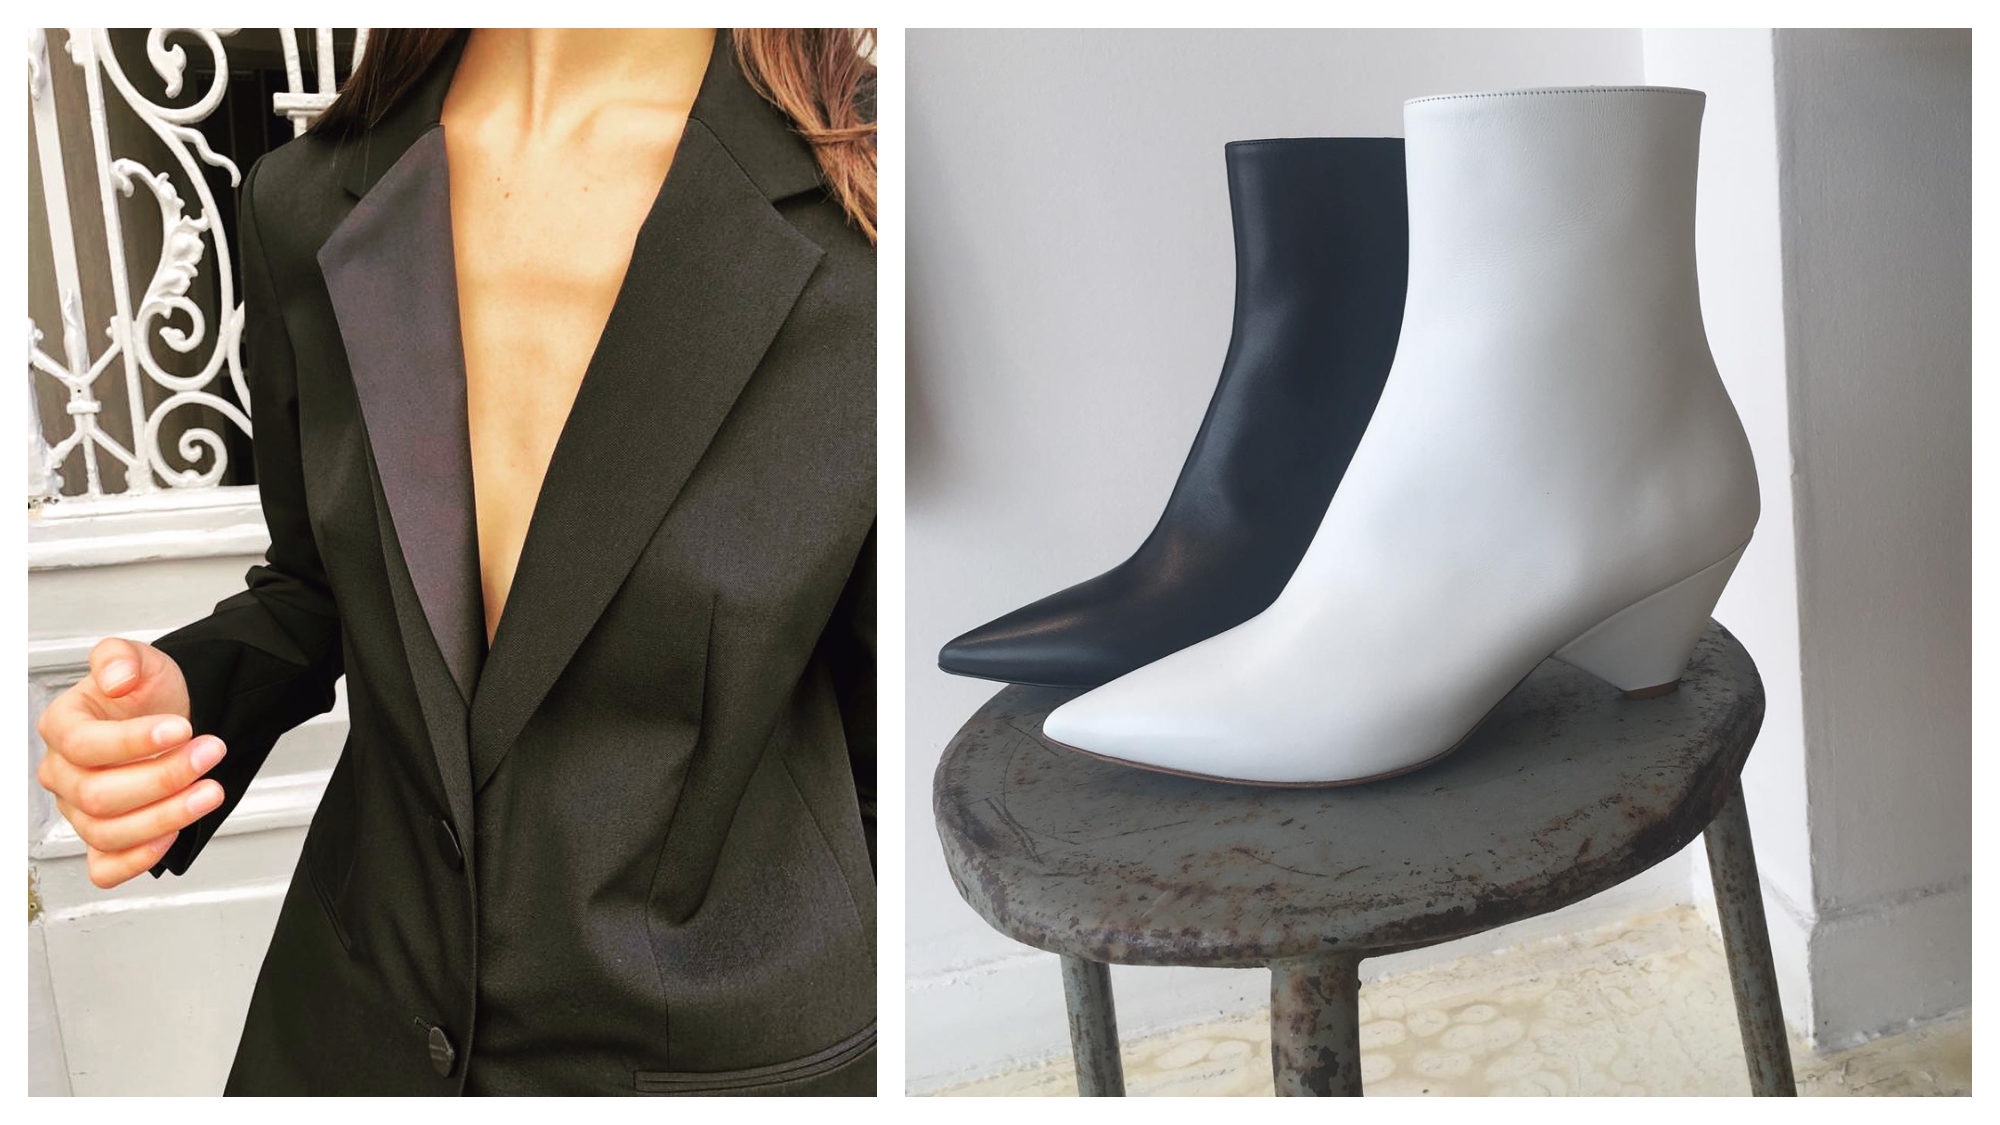 A grey and purple blazer (left) and black and white ankle boots (right) from Spree in Montmartre, which is open on Sundays in Paris.